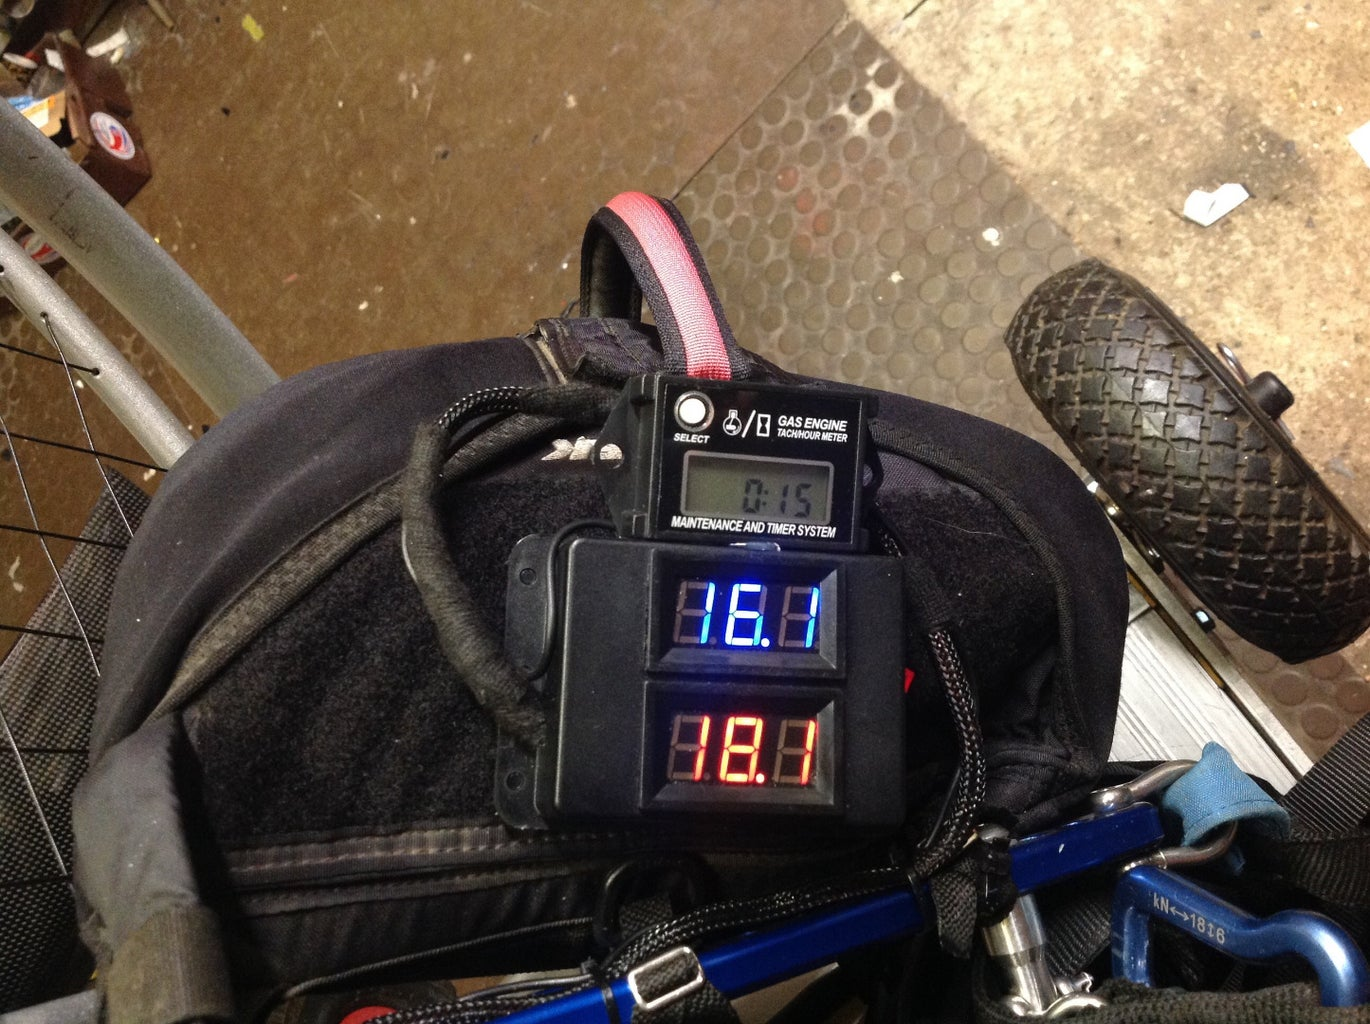 Simple CHT/EGT Readout for Paramotor